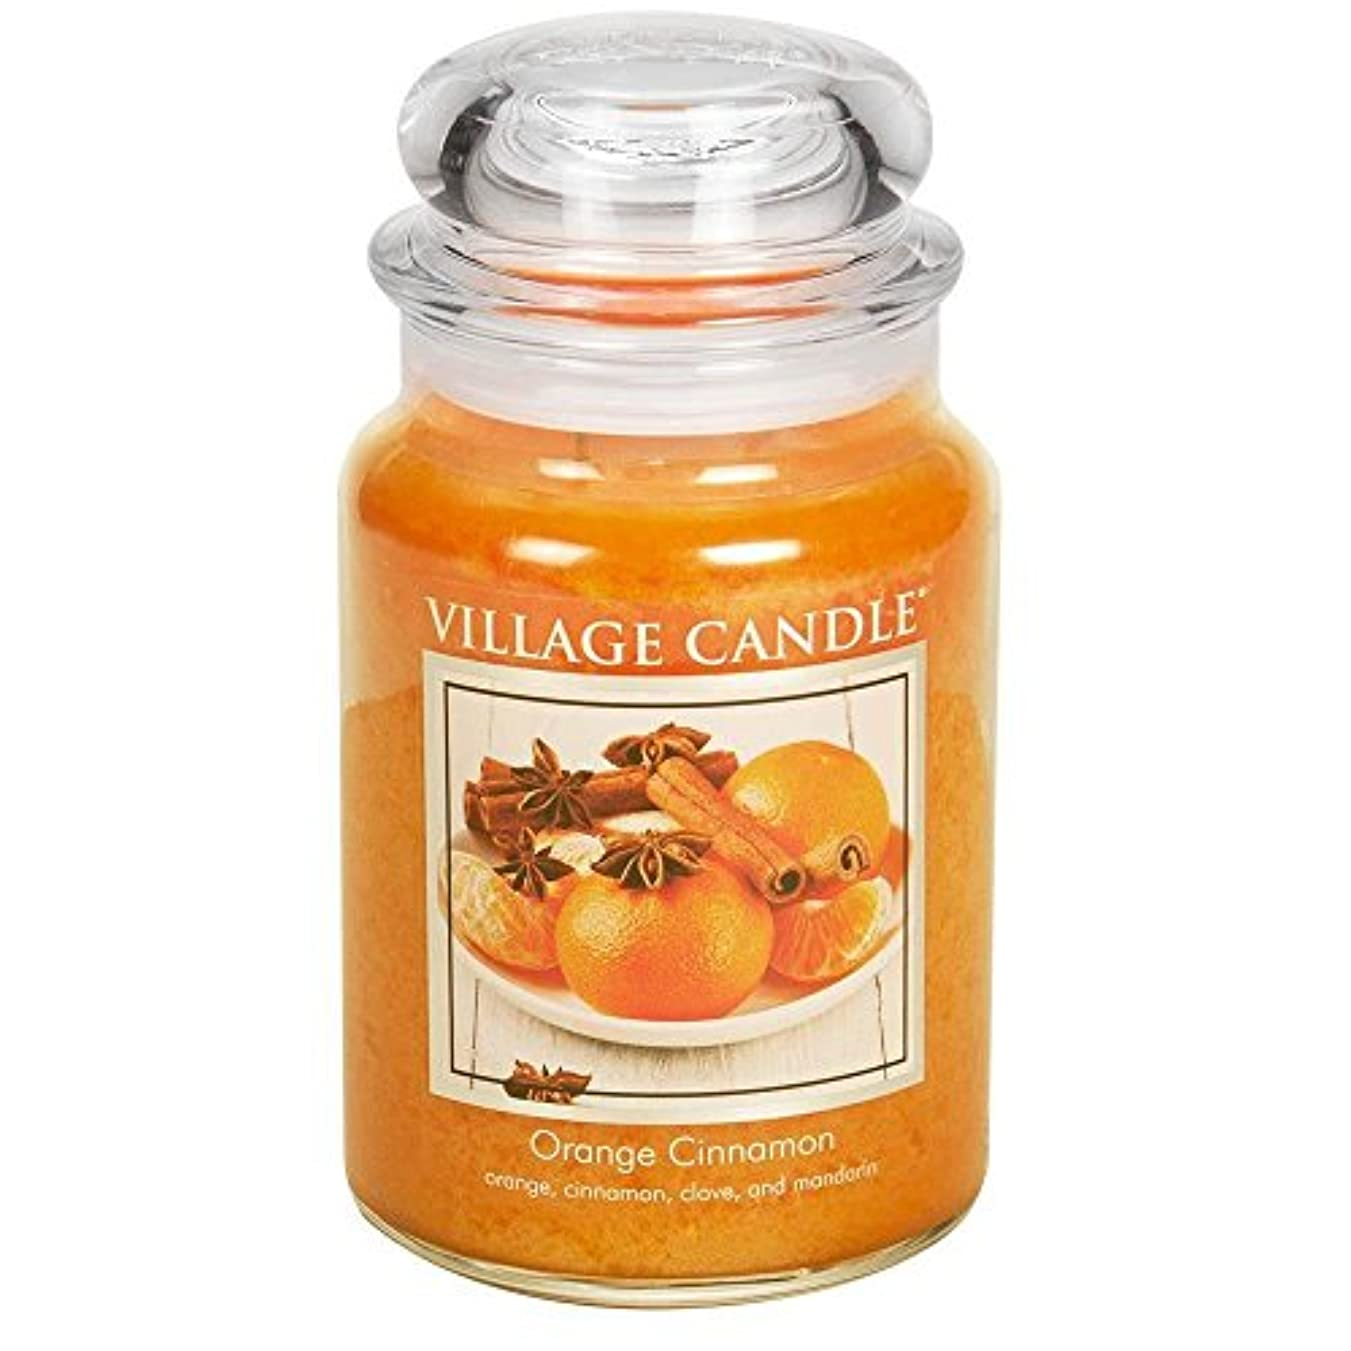 宿題をするクレア学部長Village Candle Large Fragranced Candle Jar?つ - 17cm x 10cm - 26oz (1219g)- Orange Cinnamon - upto 170 hours burn...